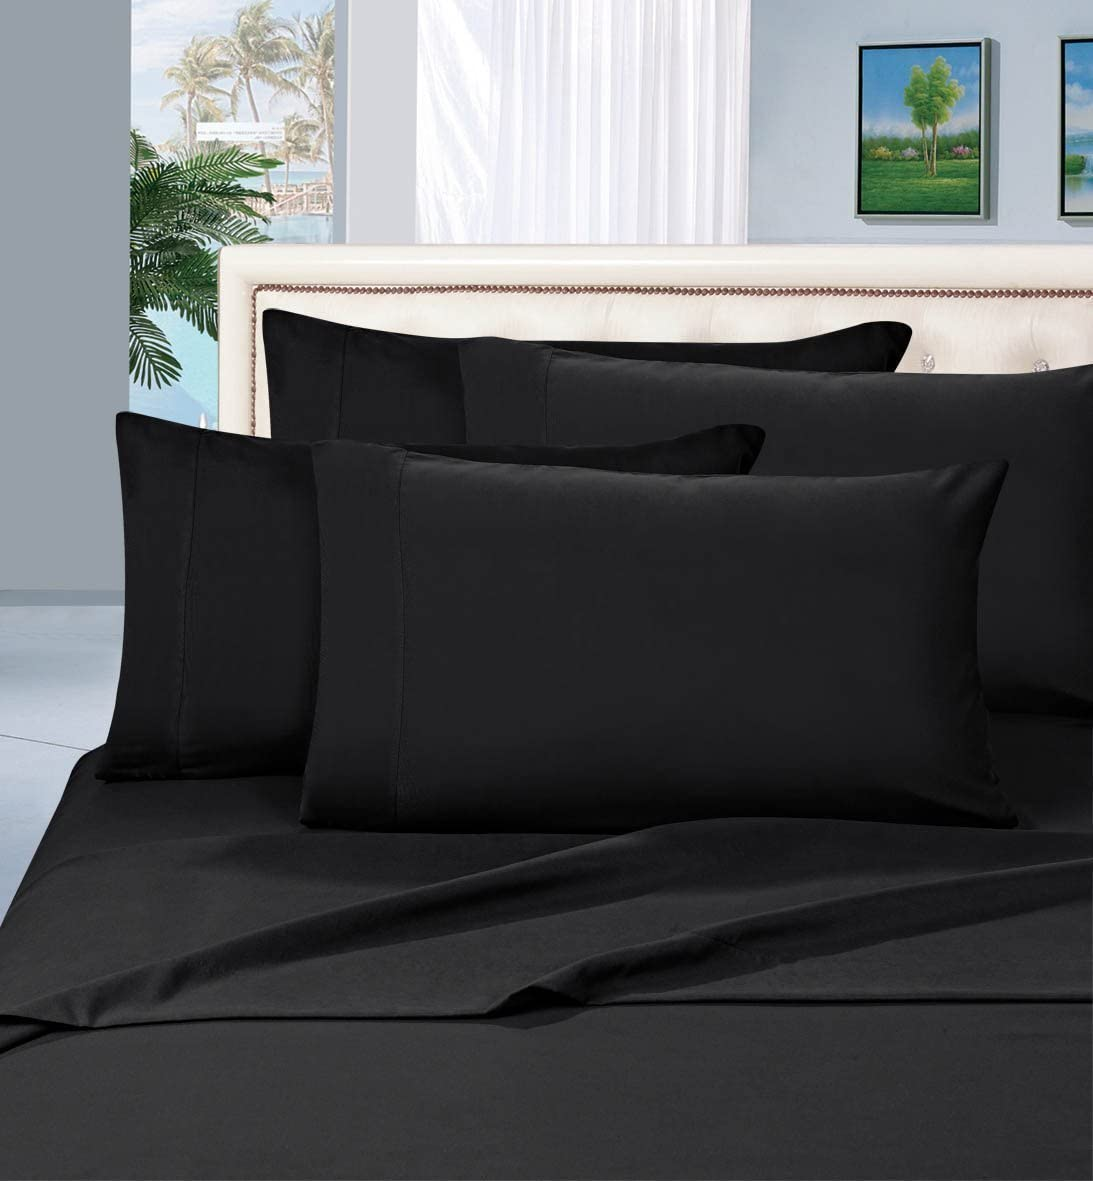 Elegant Comfort Luxurious Bed Sheets Set on Amazon 1500 Thread Count Wrinkle,Fade and Stain Resistant 4-Piece Bed Sheet Set, Deep Pocket, Hypoallergenic - California King Black